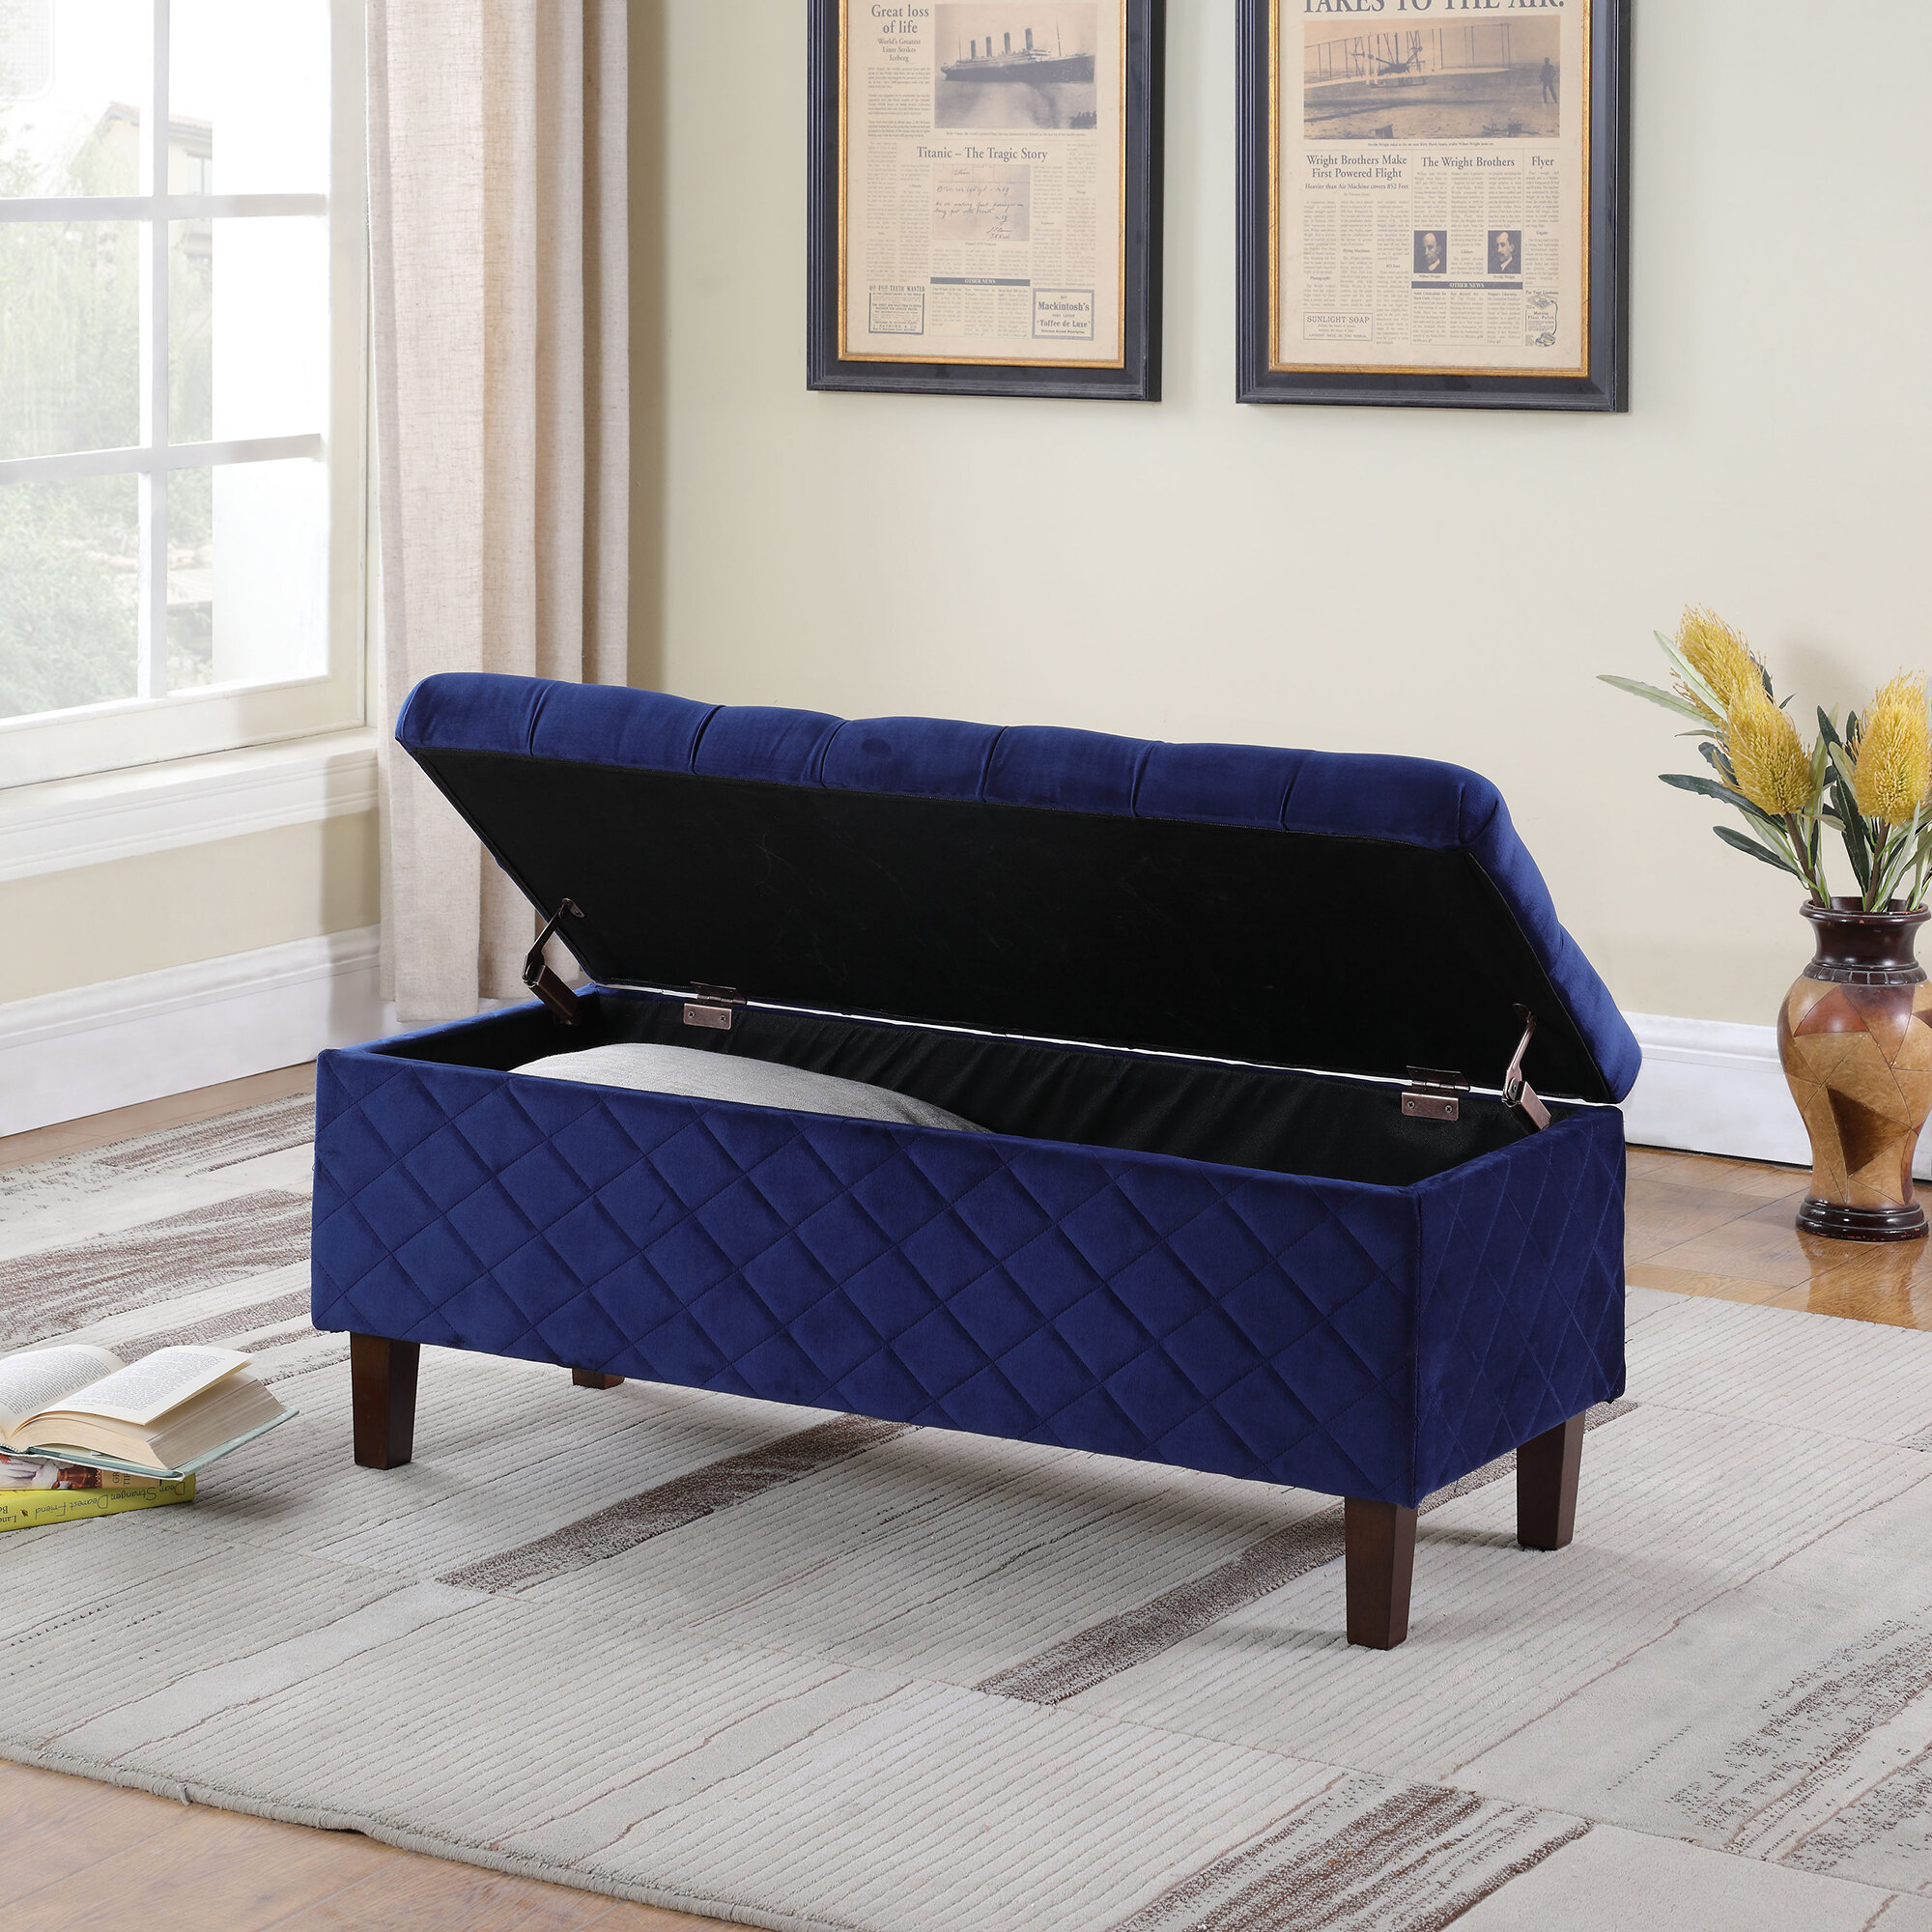 Canaan Upholstered Storage Bench